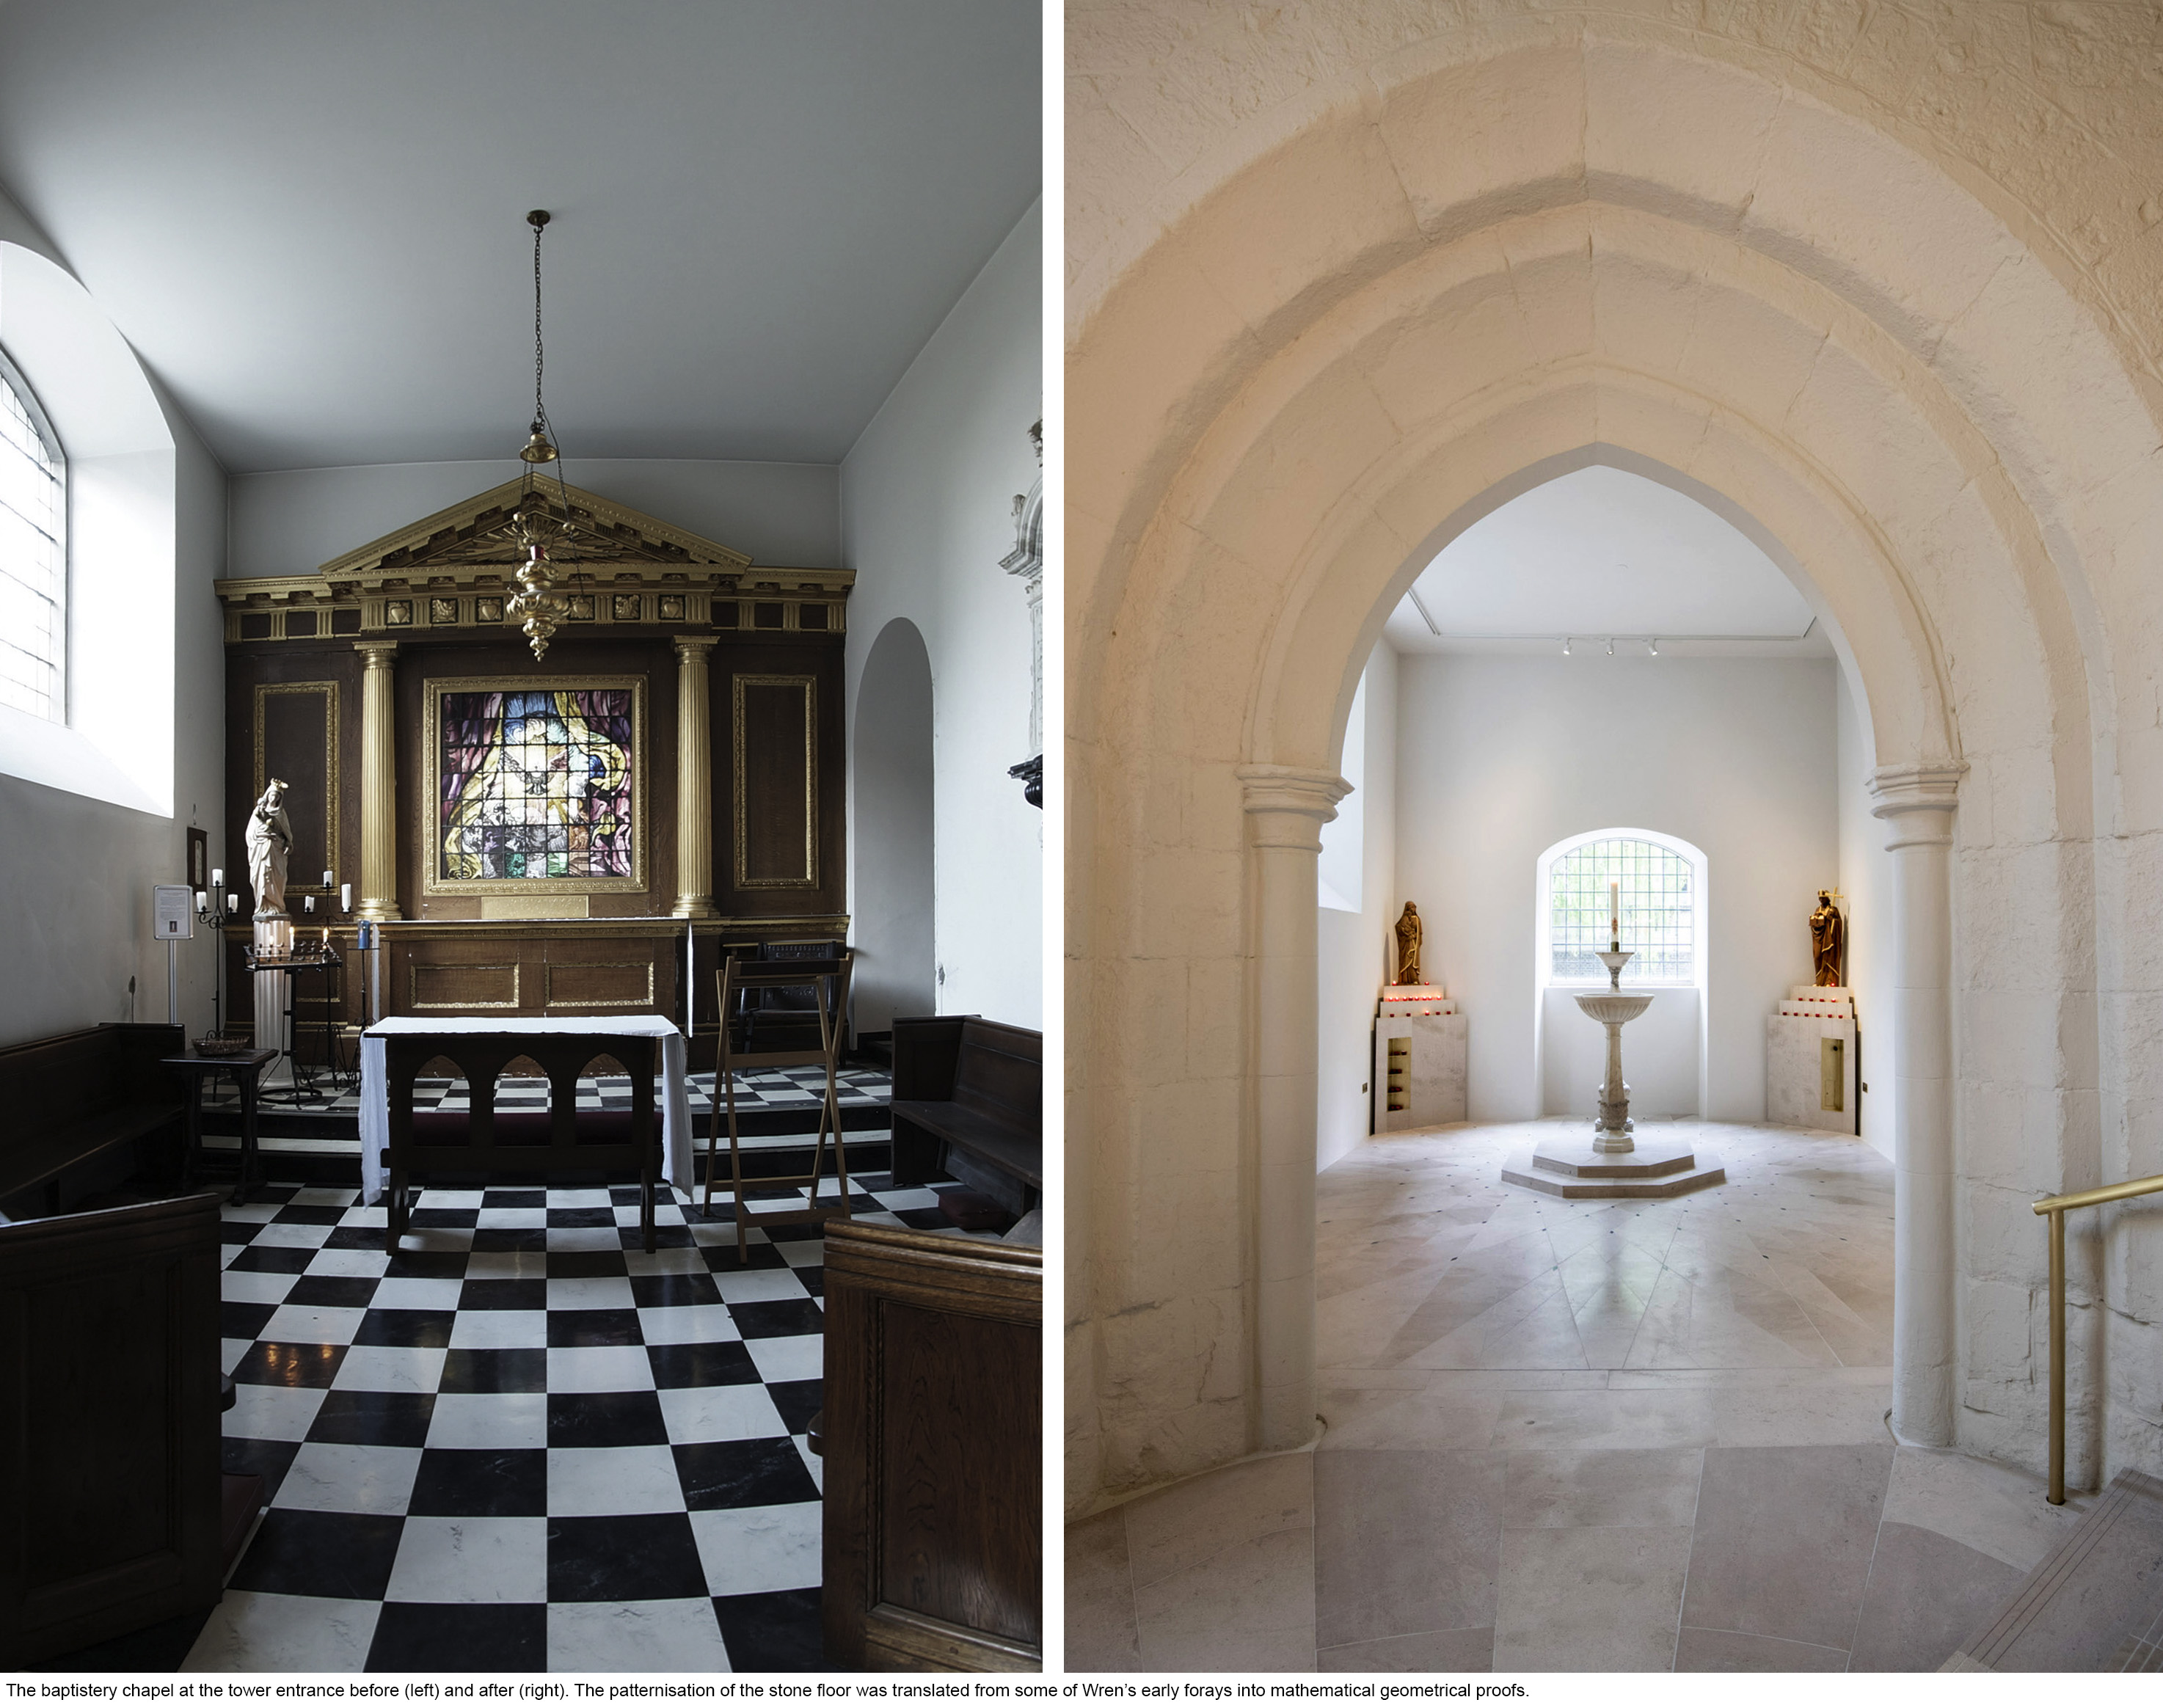 Presidents' Award Shortlist 2019 - St Andrew's church, Holborn - Baptistery before and after